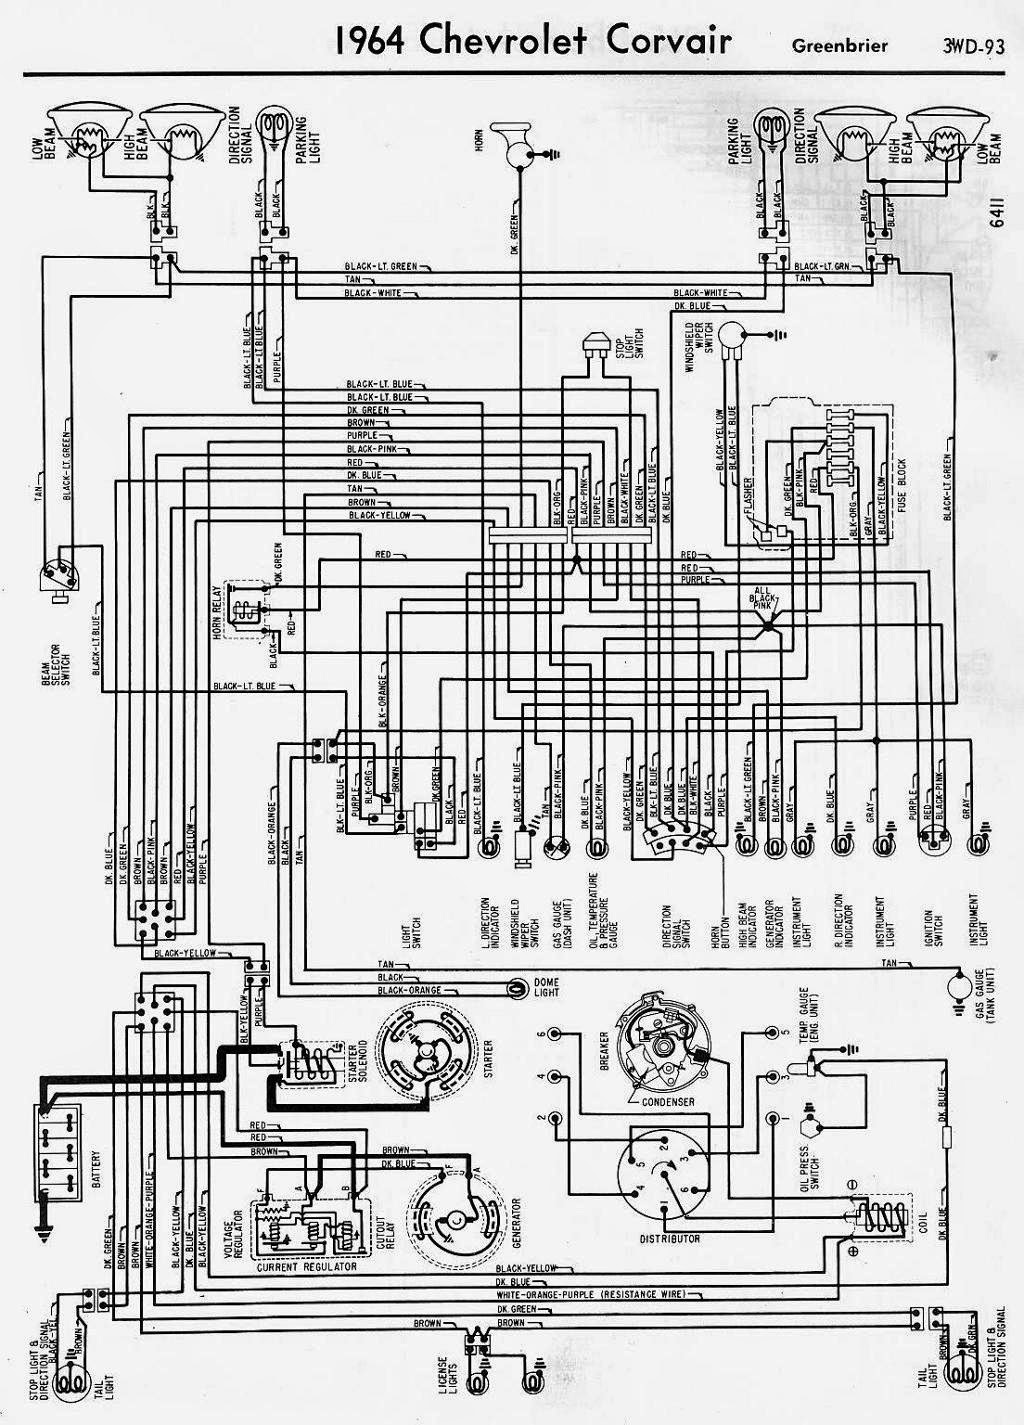 hight resolution of 1964 chevrolet corvair greenbrier wiring diagram schematic wiring